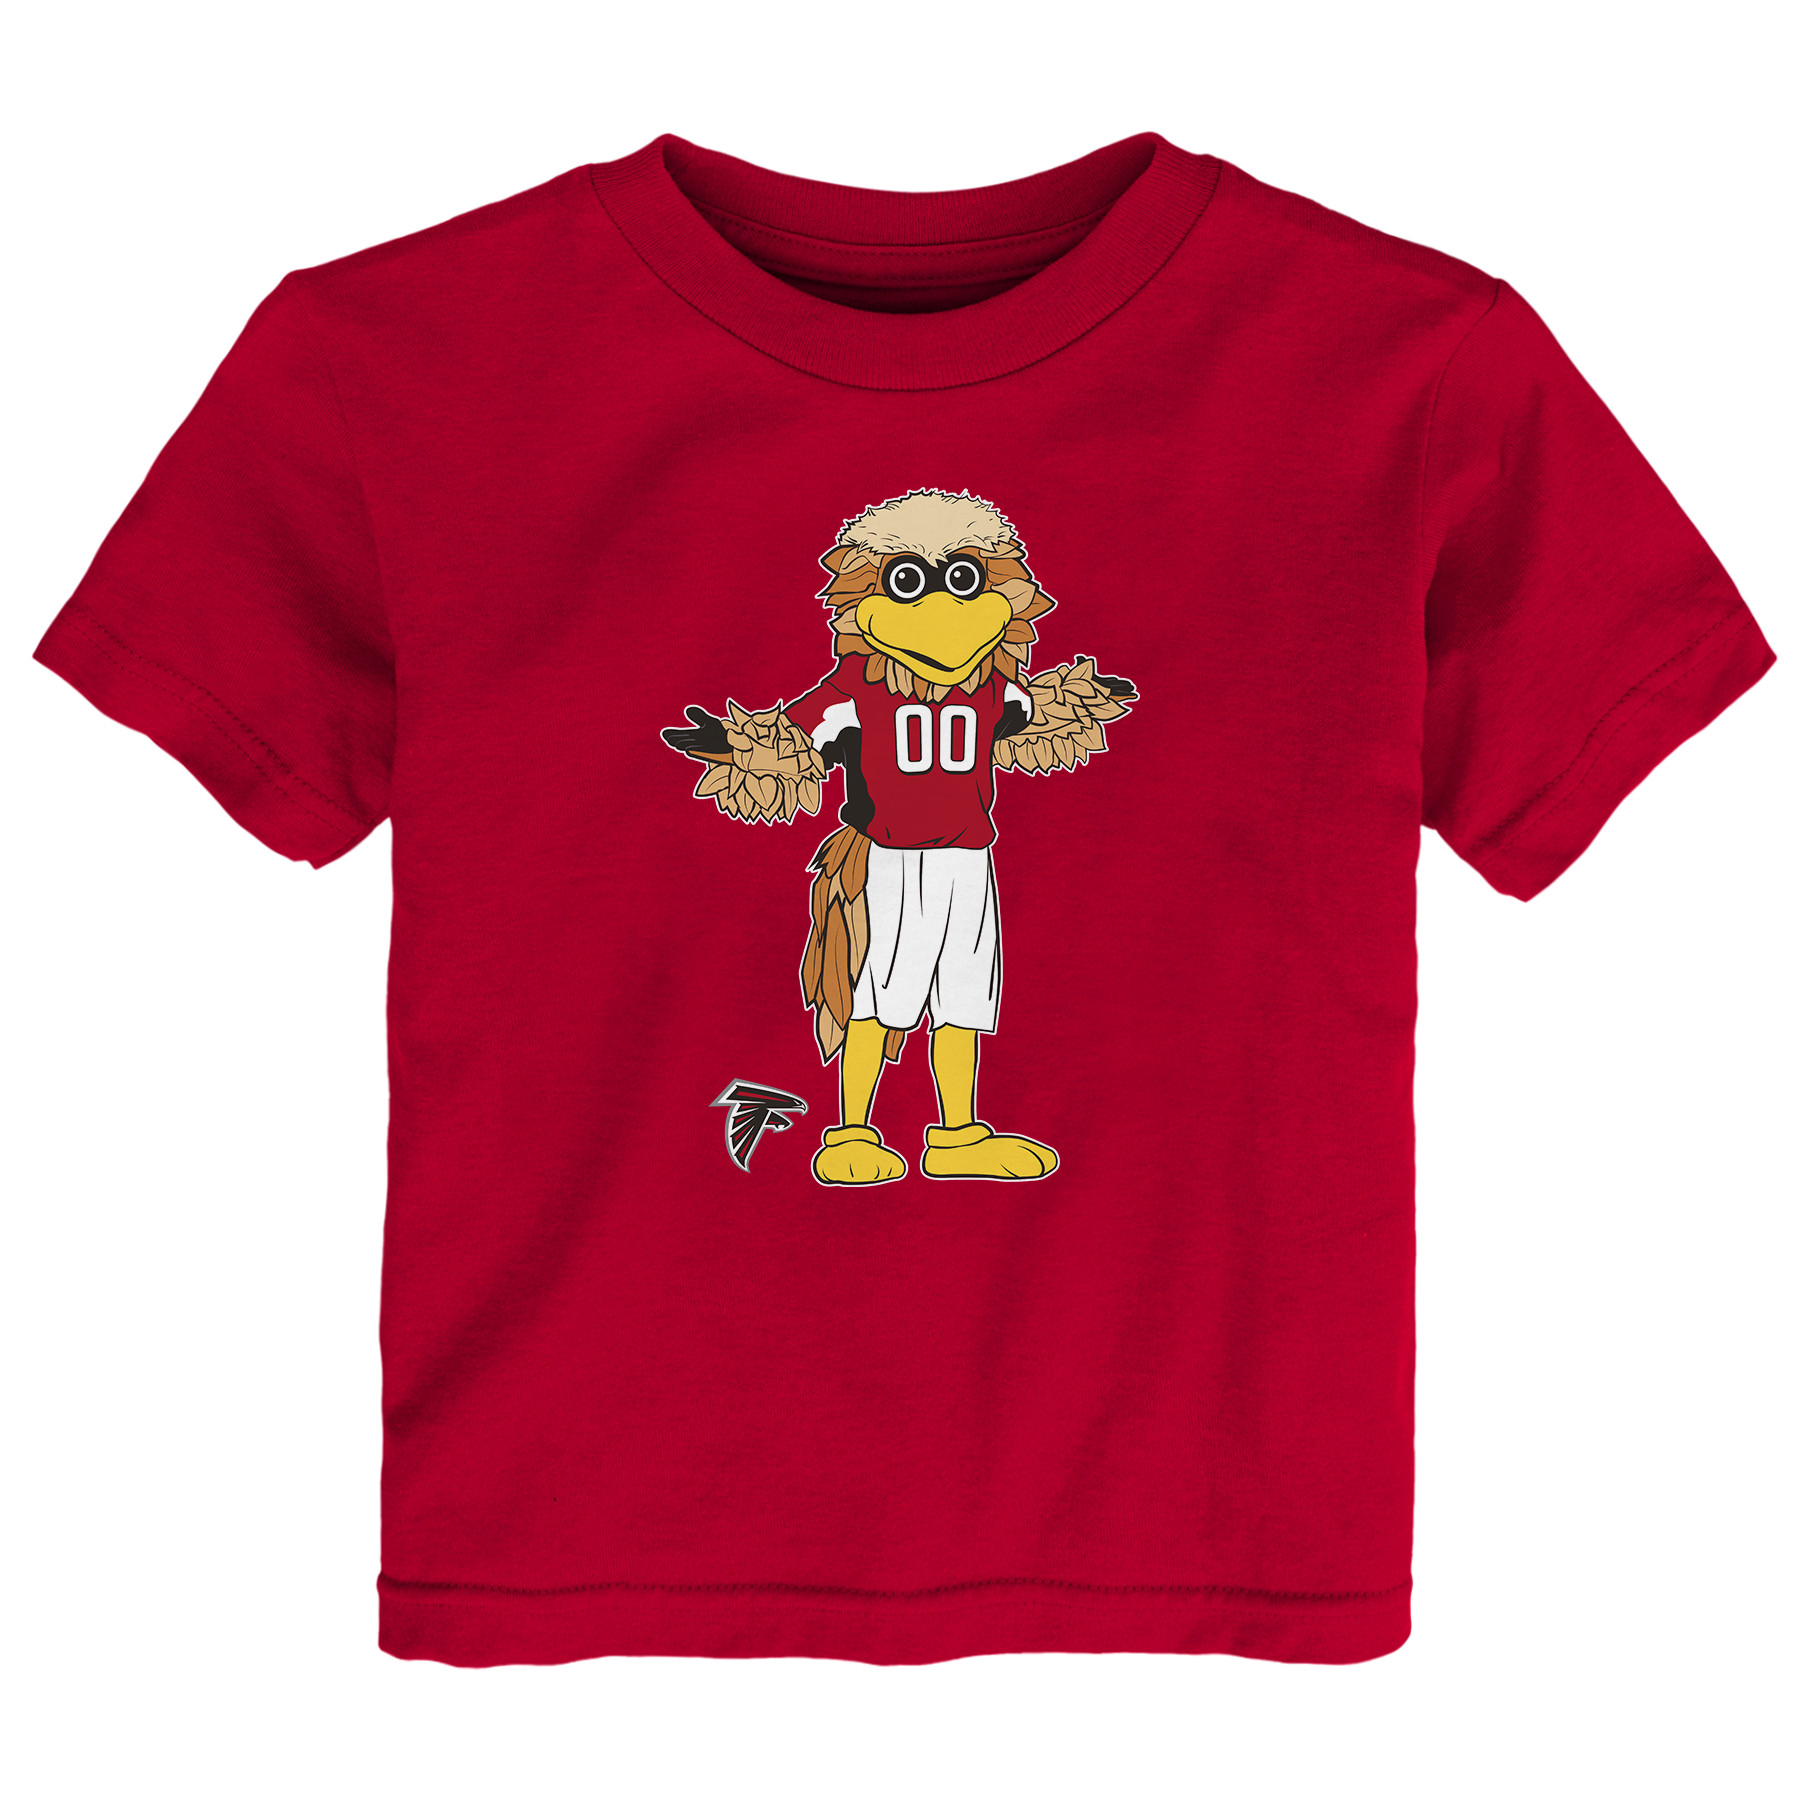 Atlanta Falcons Toddler Standing Team Mascot T-Shirt - Red